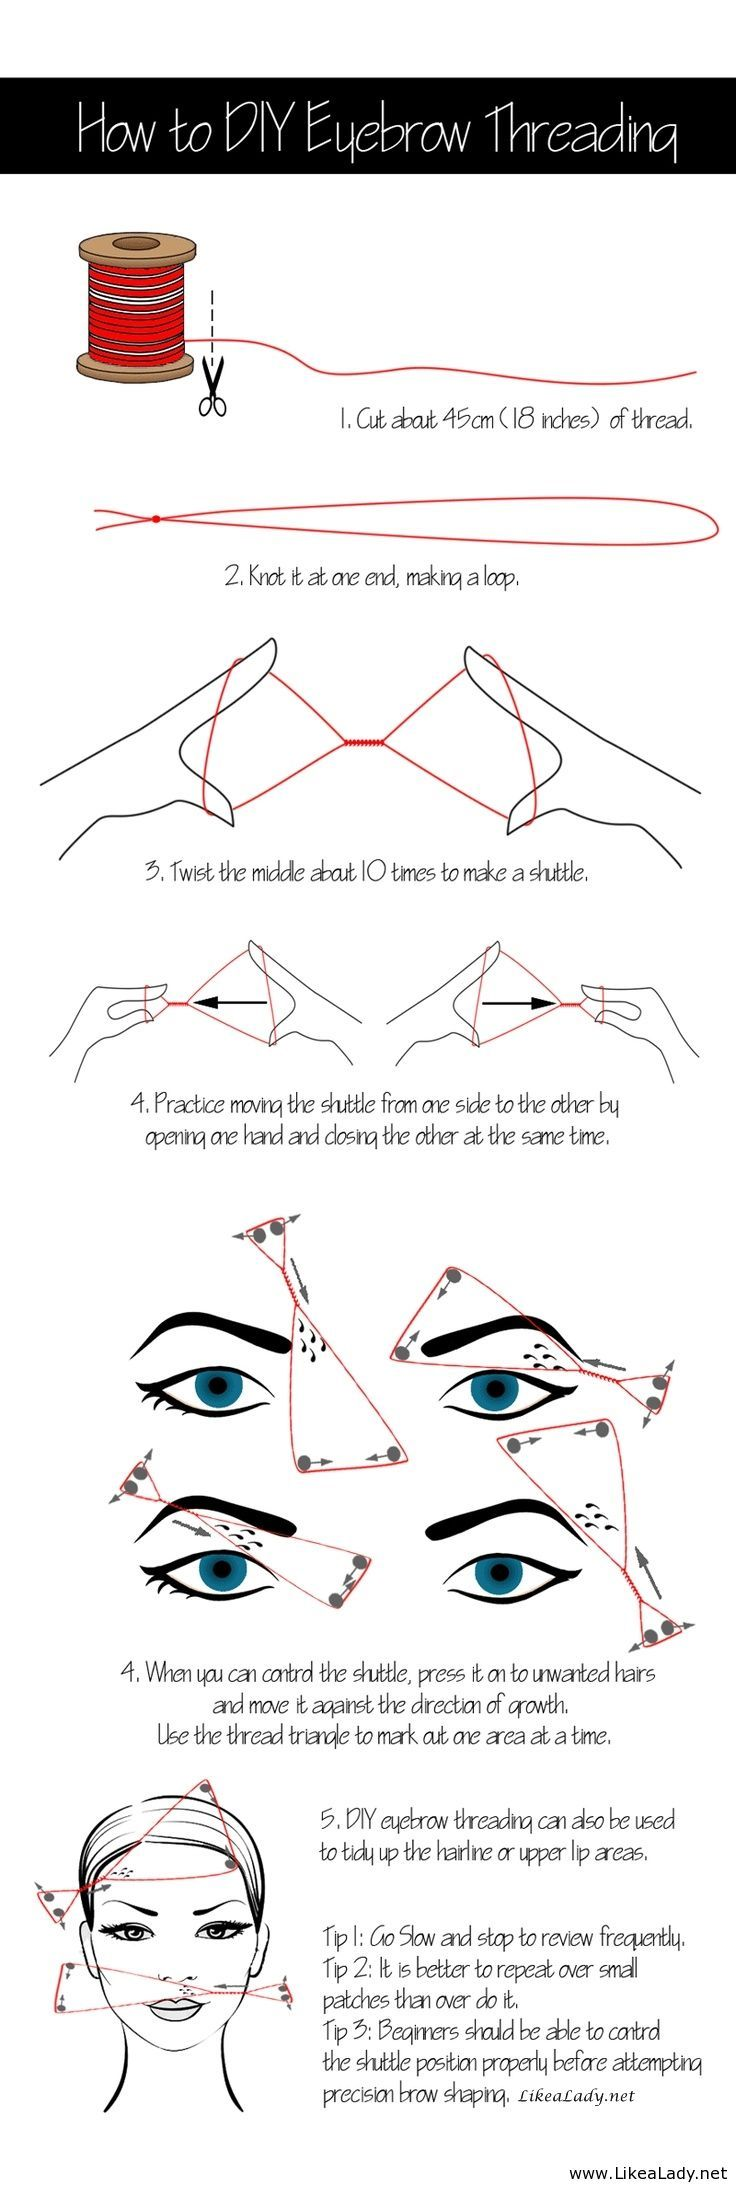 How to do Eye Brow Threading by yourself